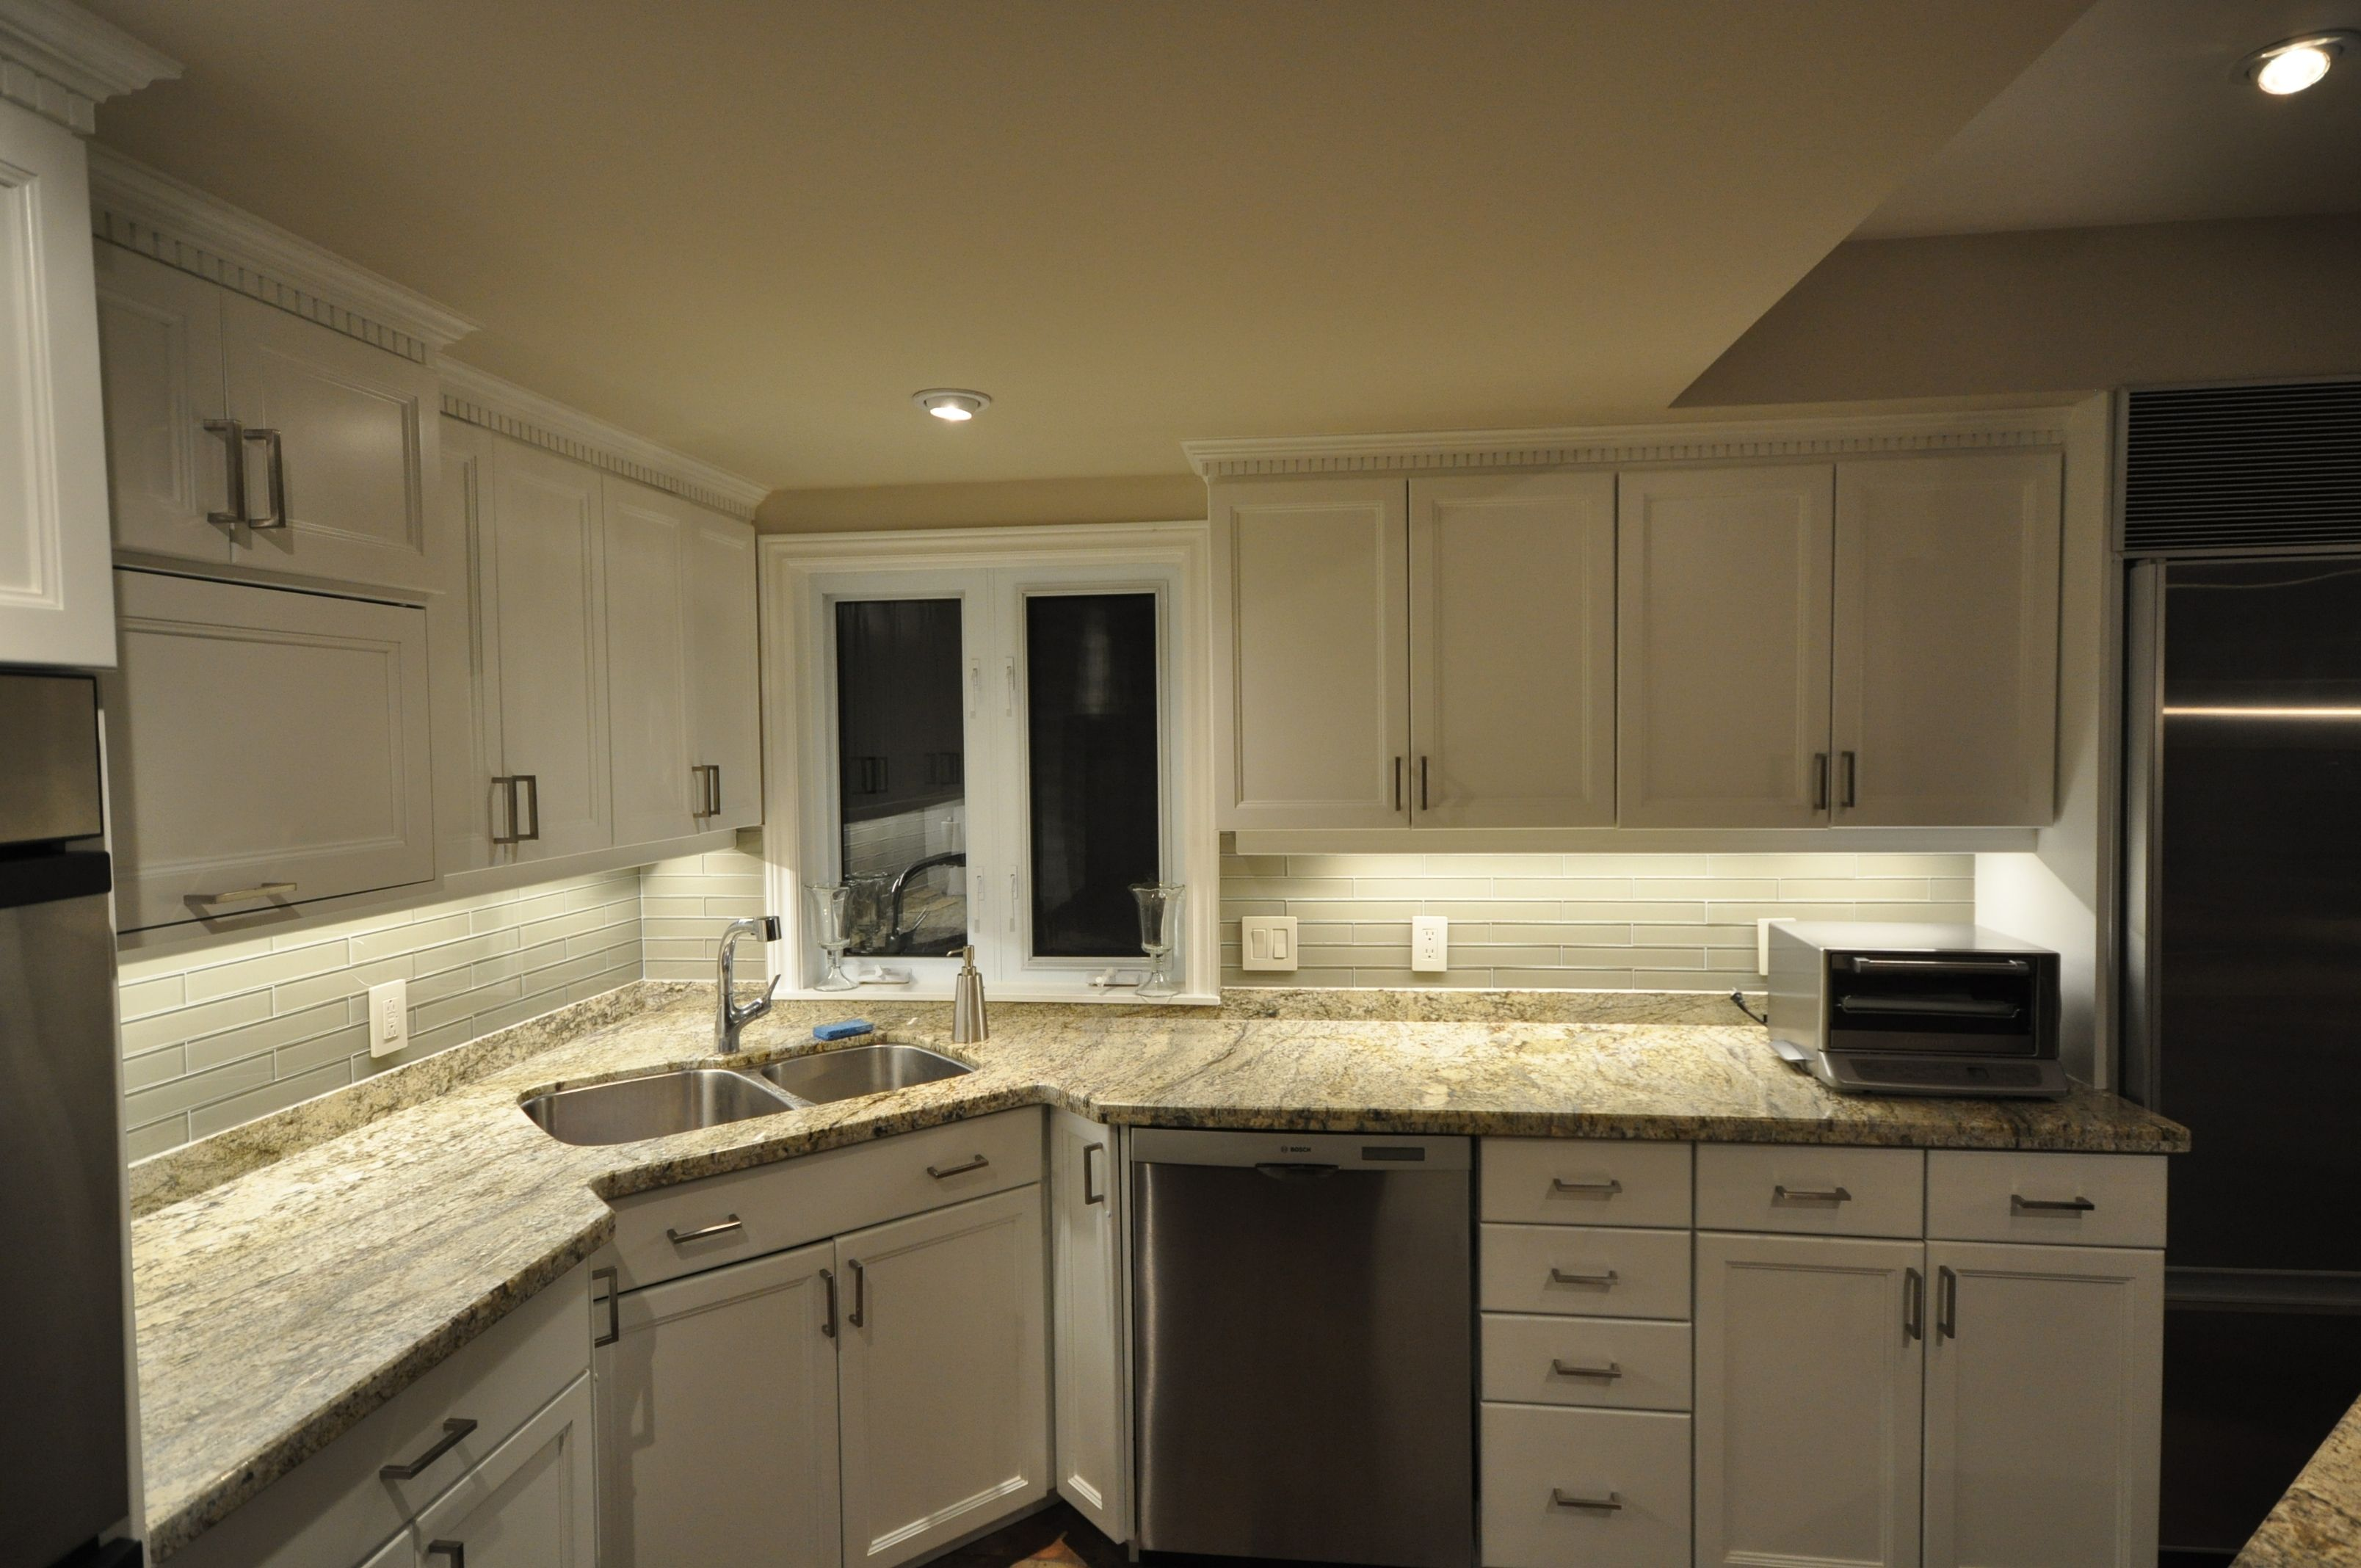 rab design s led strip lights install for under cabinet